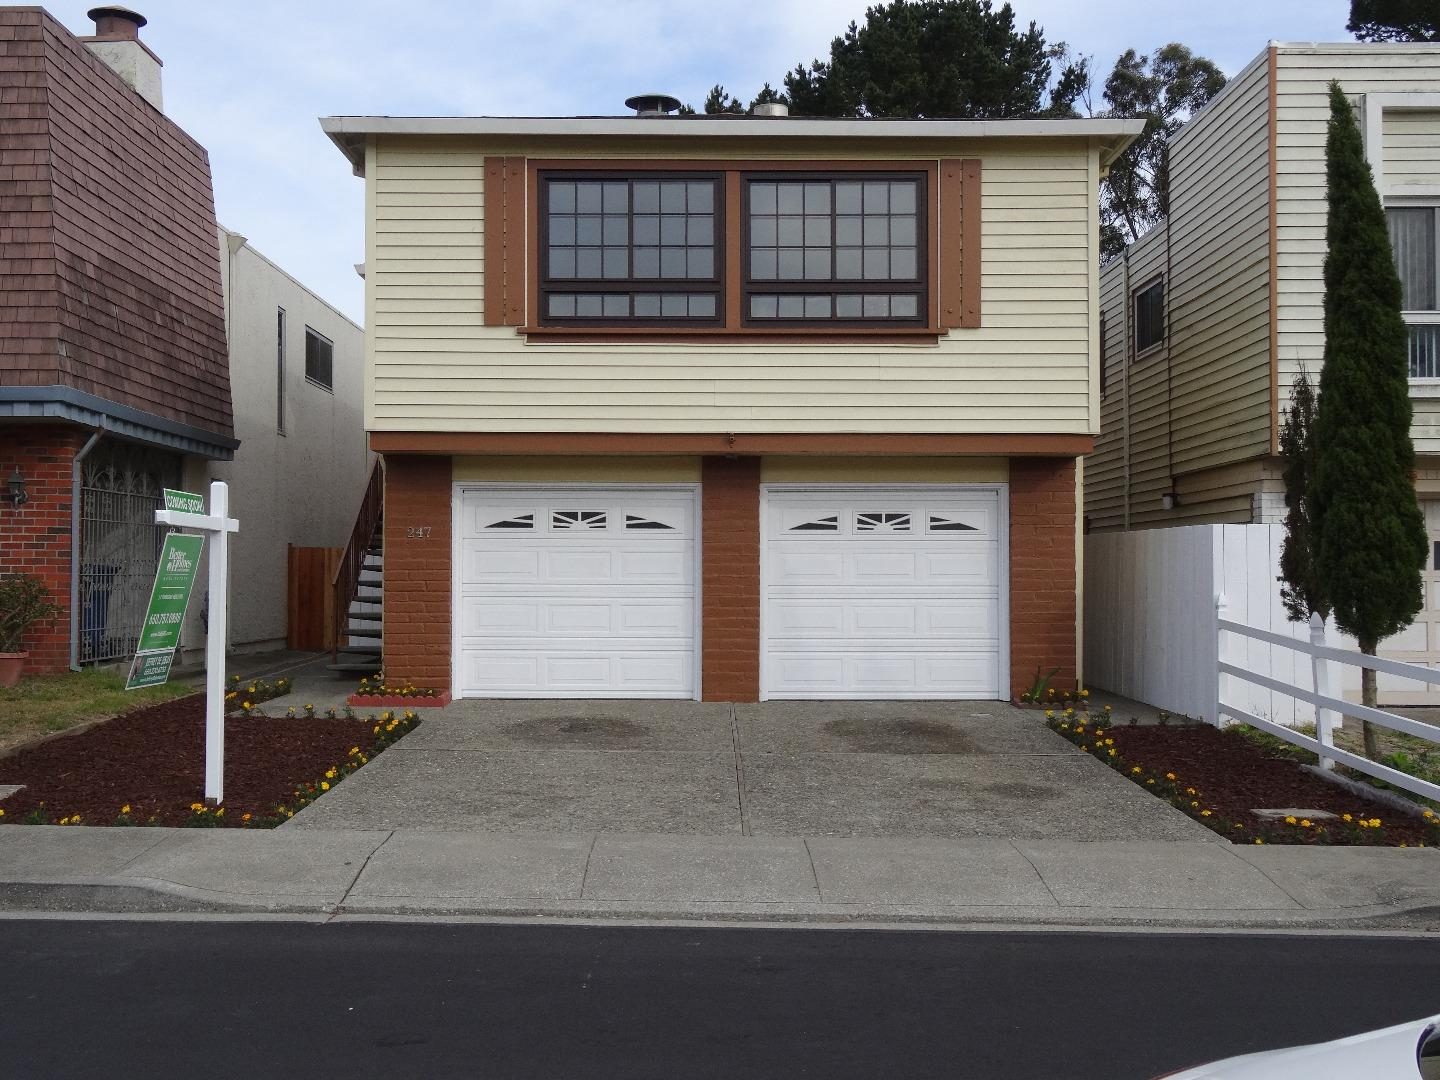 247 Dennis Dr, Daly City, CA 94015